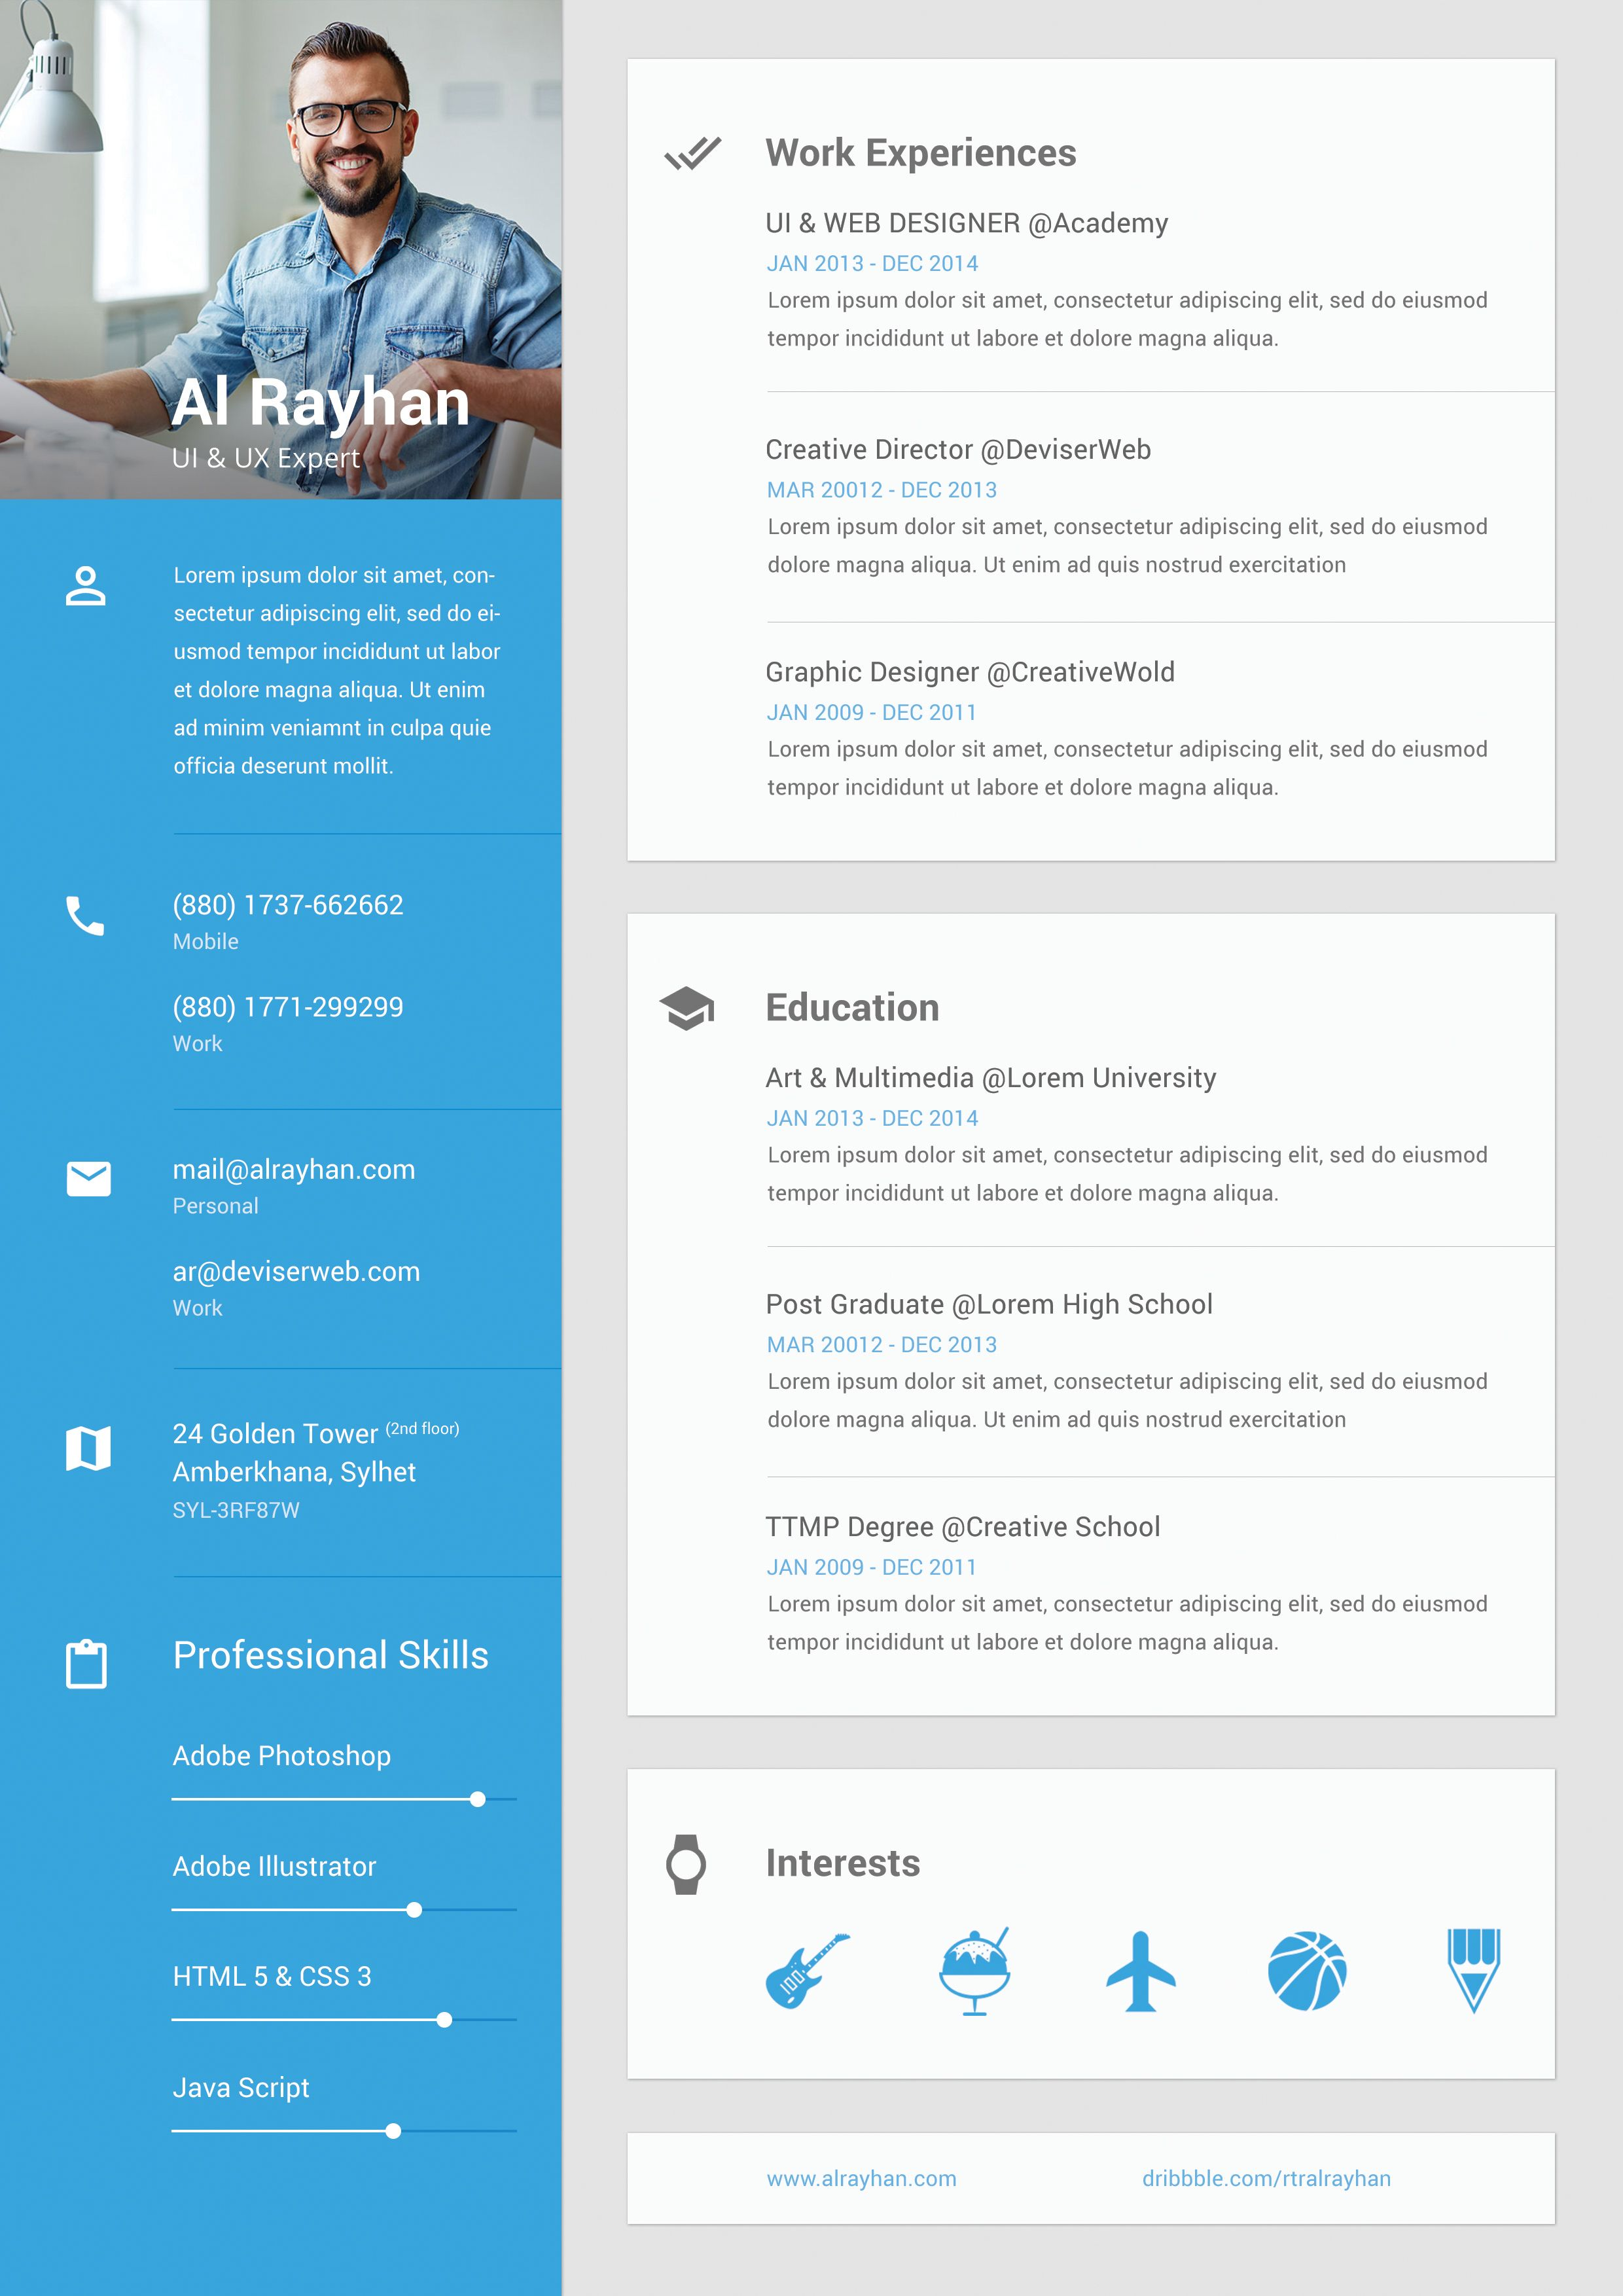 metarial design cv resume  pic a bit big for my tastes  but like the left column otherwise  not